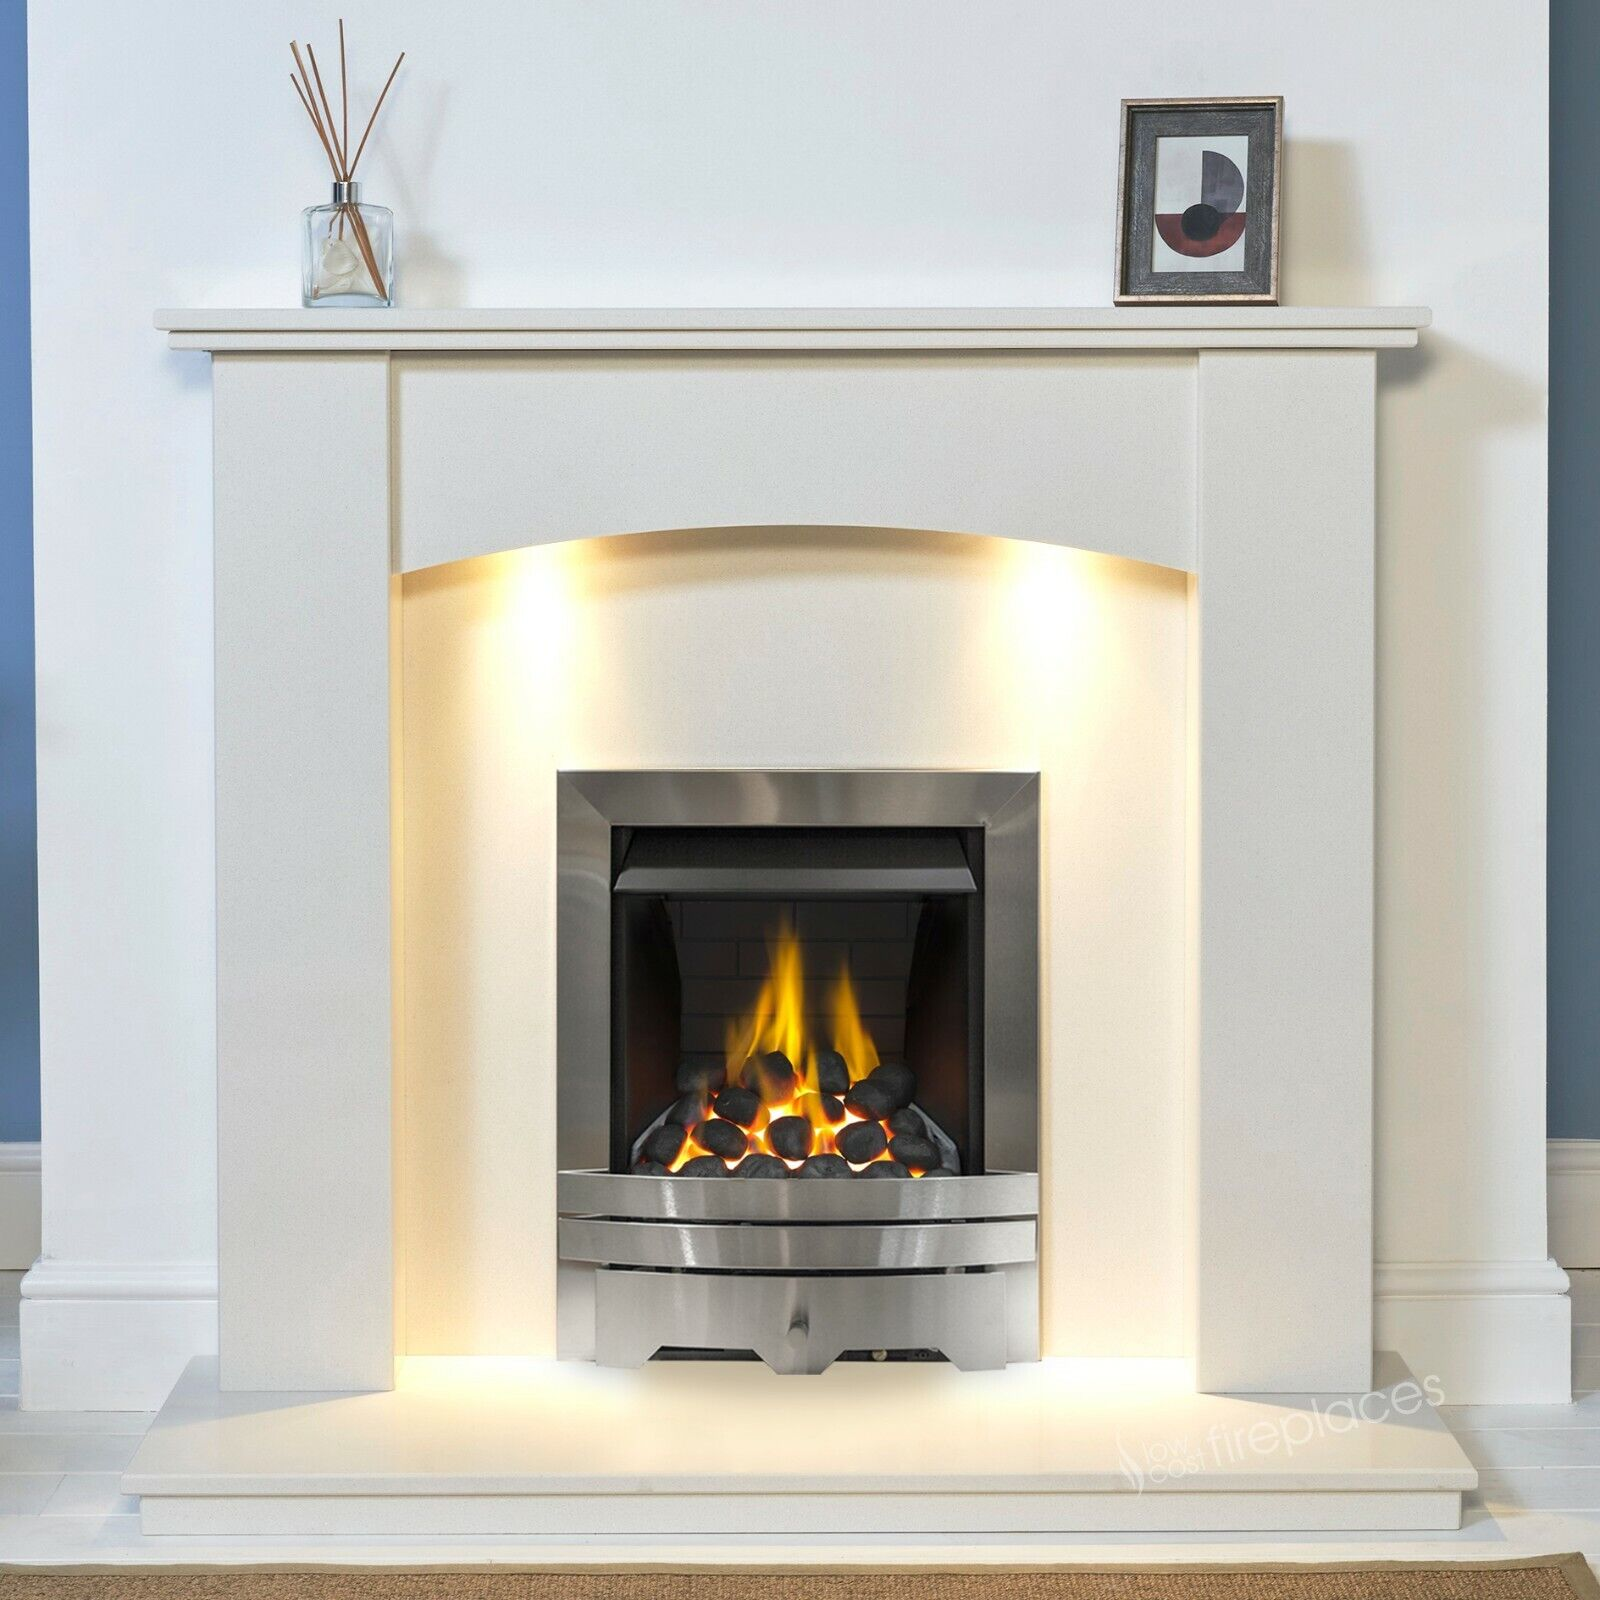 White Marble Stone Curved Surround Gas Fire Fireplace Suite Downlights Ebay